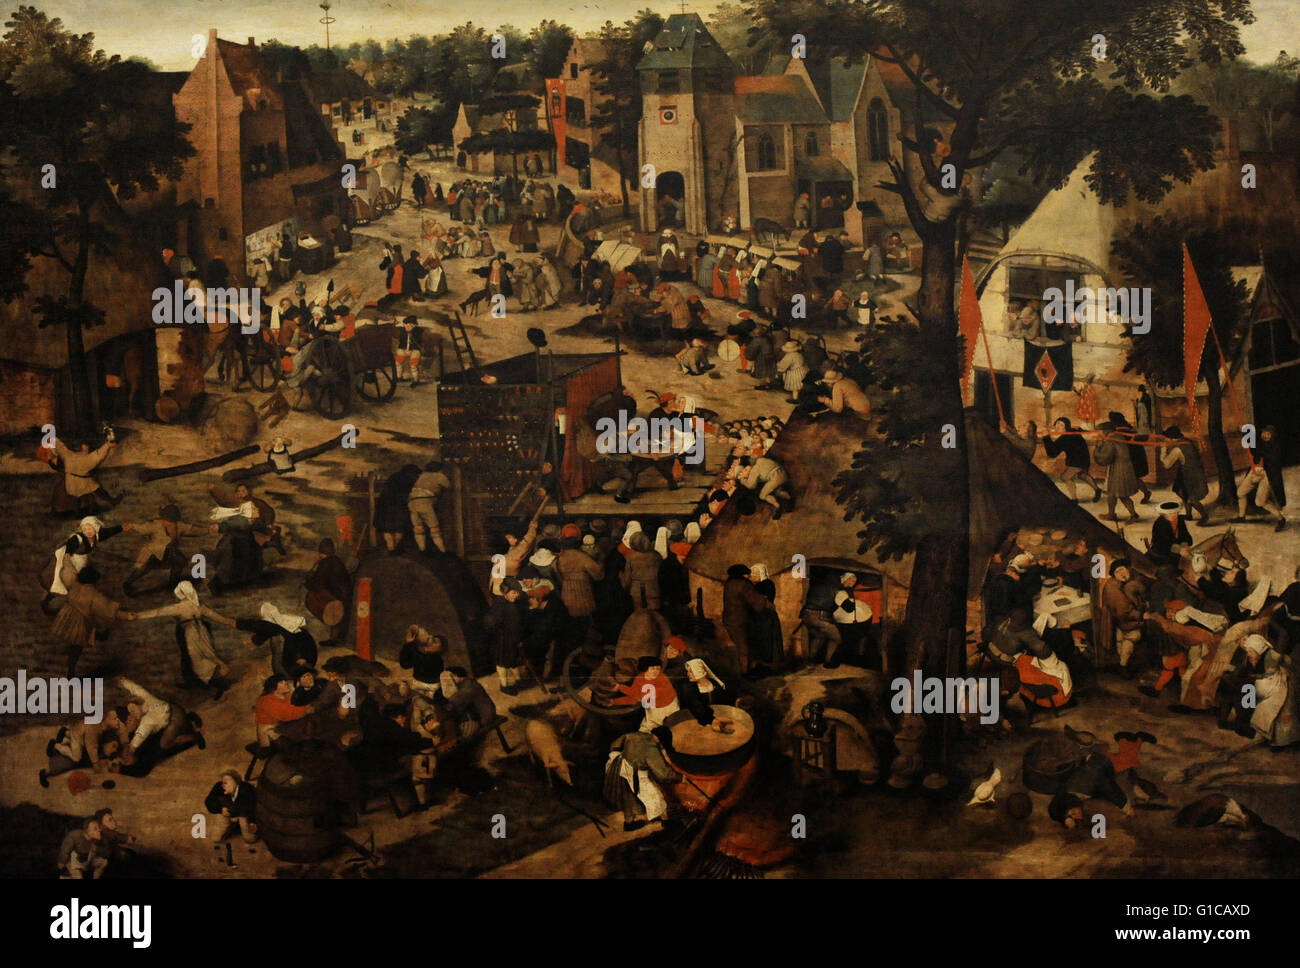 Pieter Brueghel the Younger (1564-1638). Fair with a Theatrical Presentation. First halph of the 17th century. Oil - Stock Image